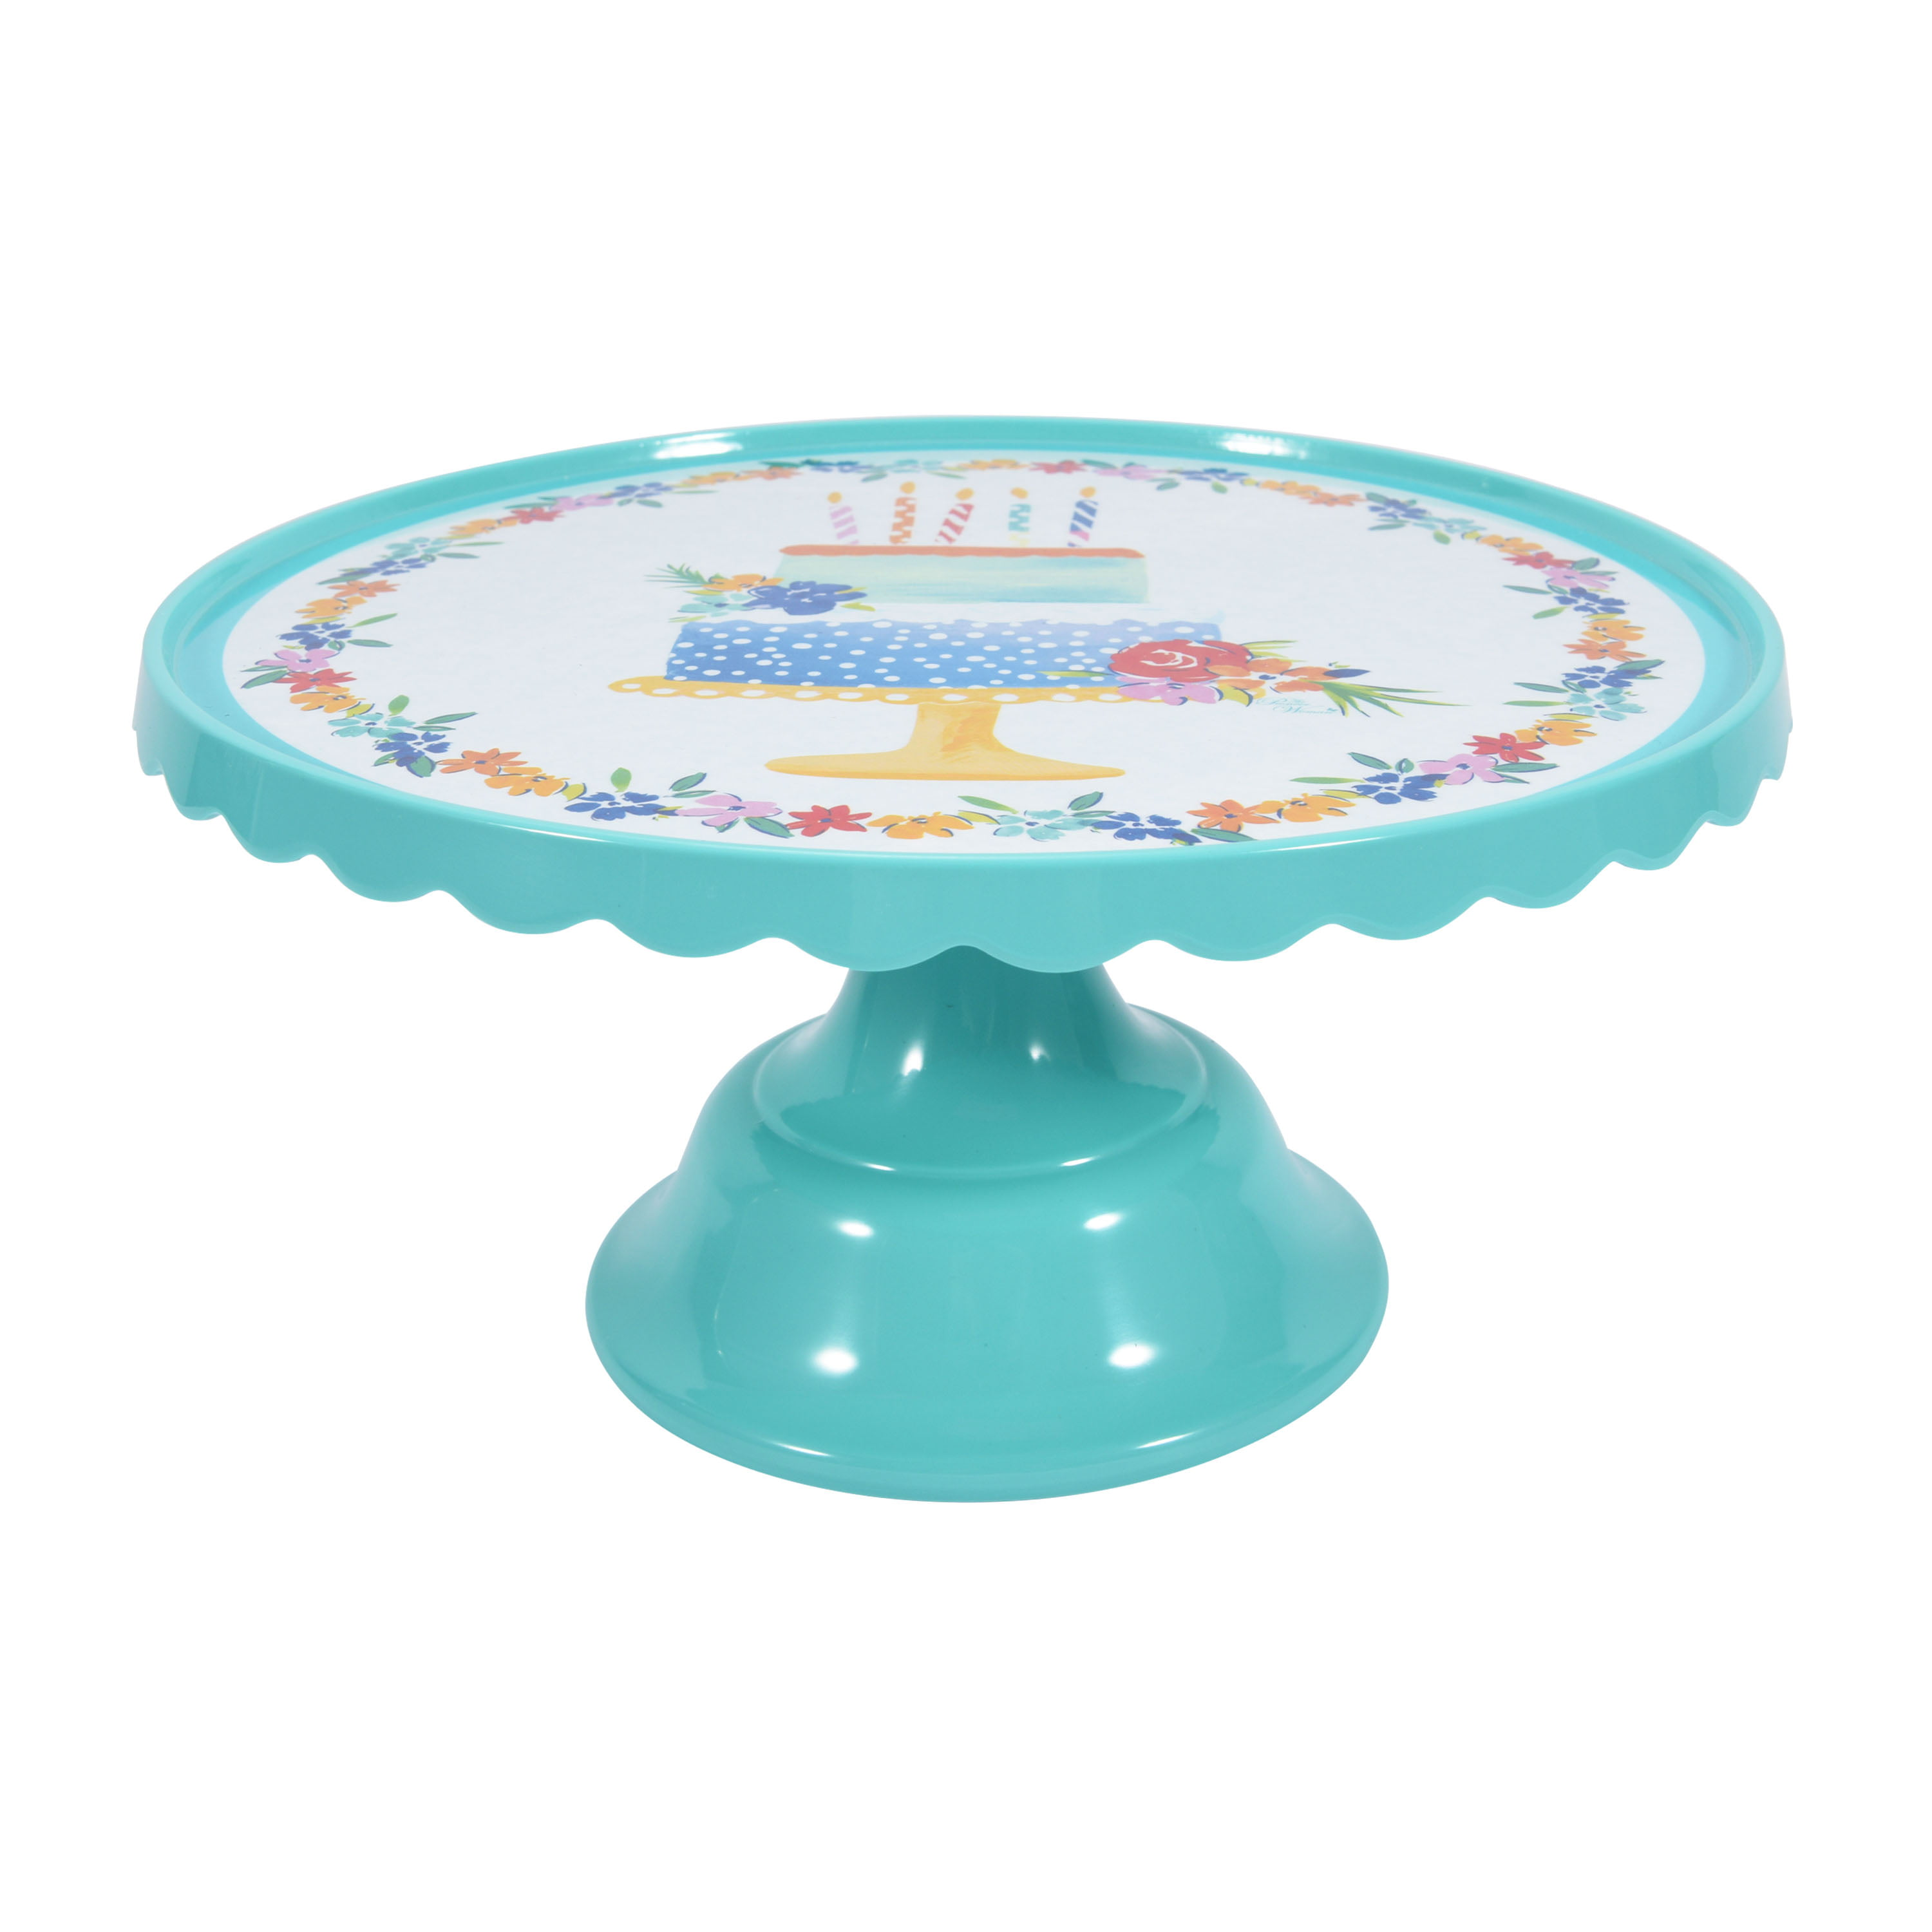 Round Cake Stand with Cloche Easter Pink Milk Glass Hearth and Hand Magnolia